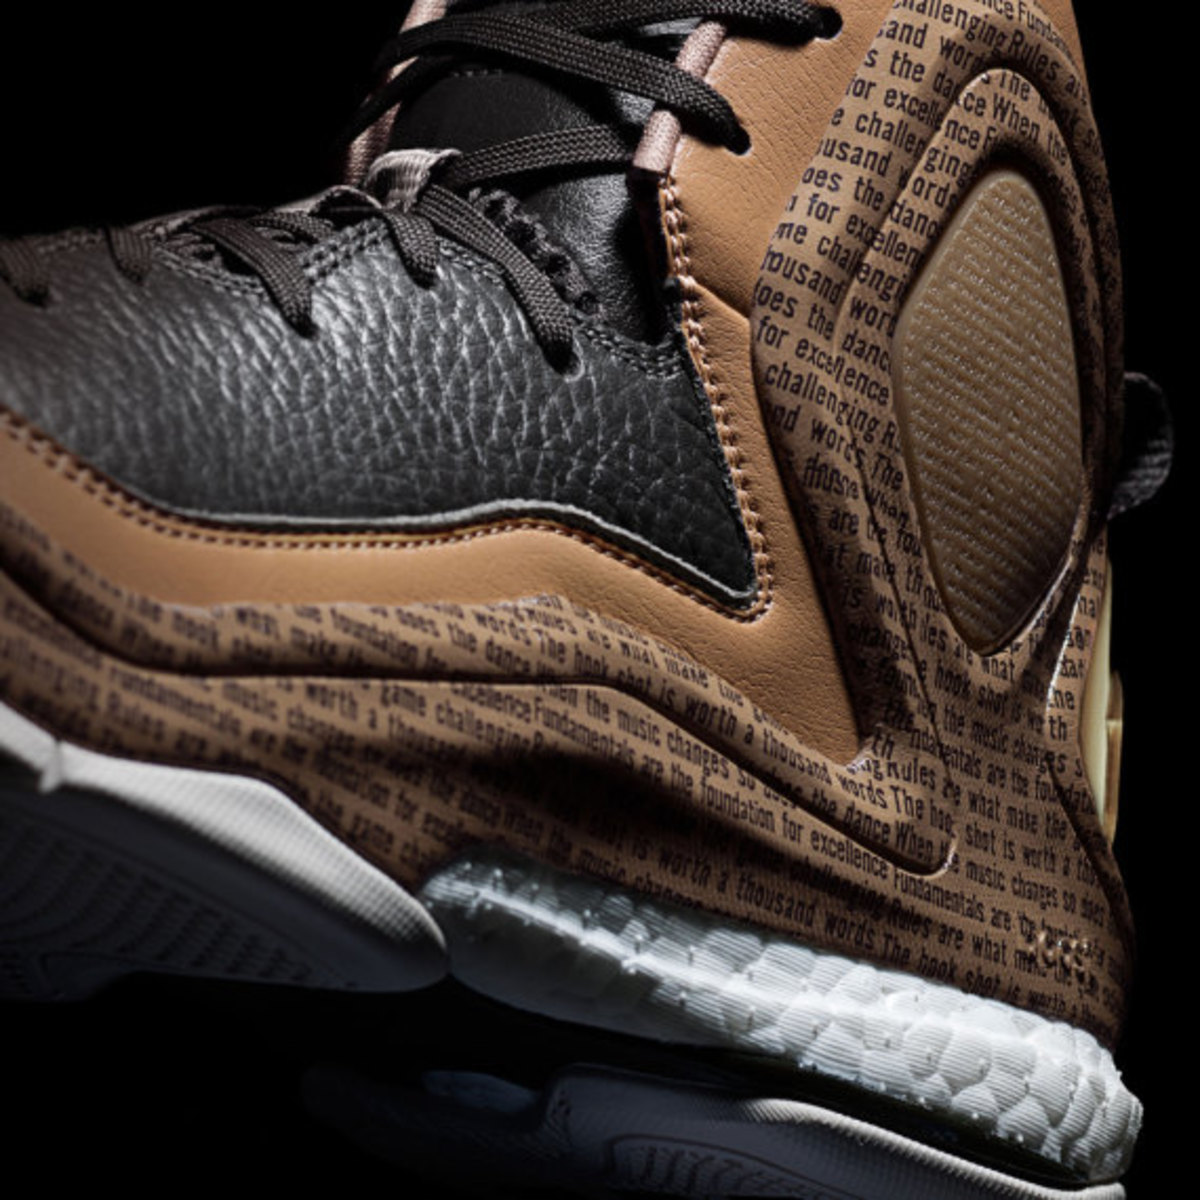 adidas-basketball-2015-black-history-month-collection-02